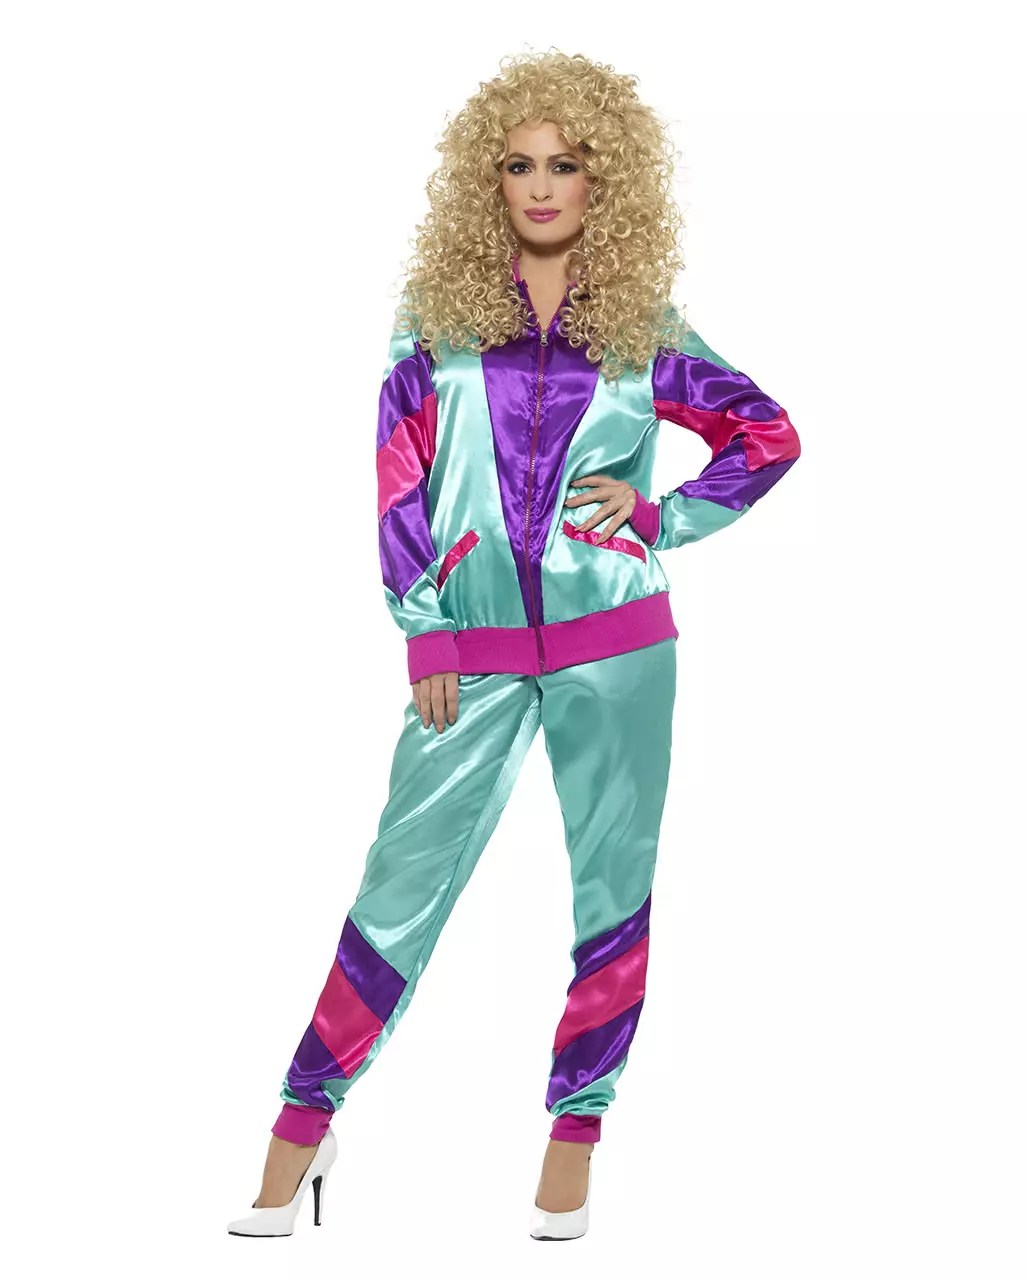 80iger Jahre Look 80s Jogging Suit Costume